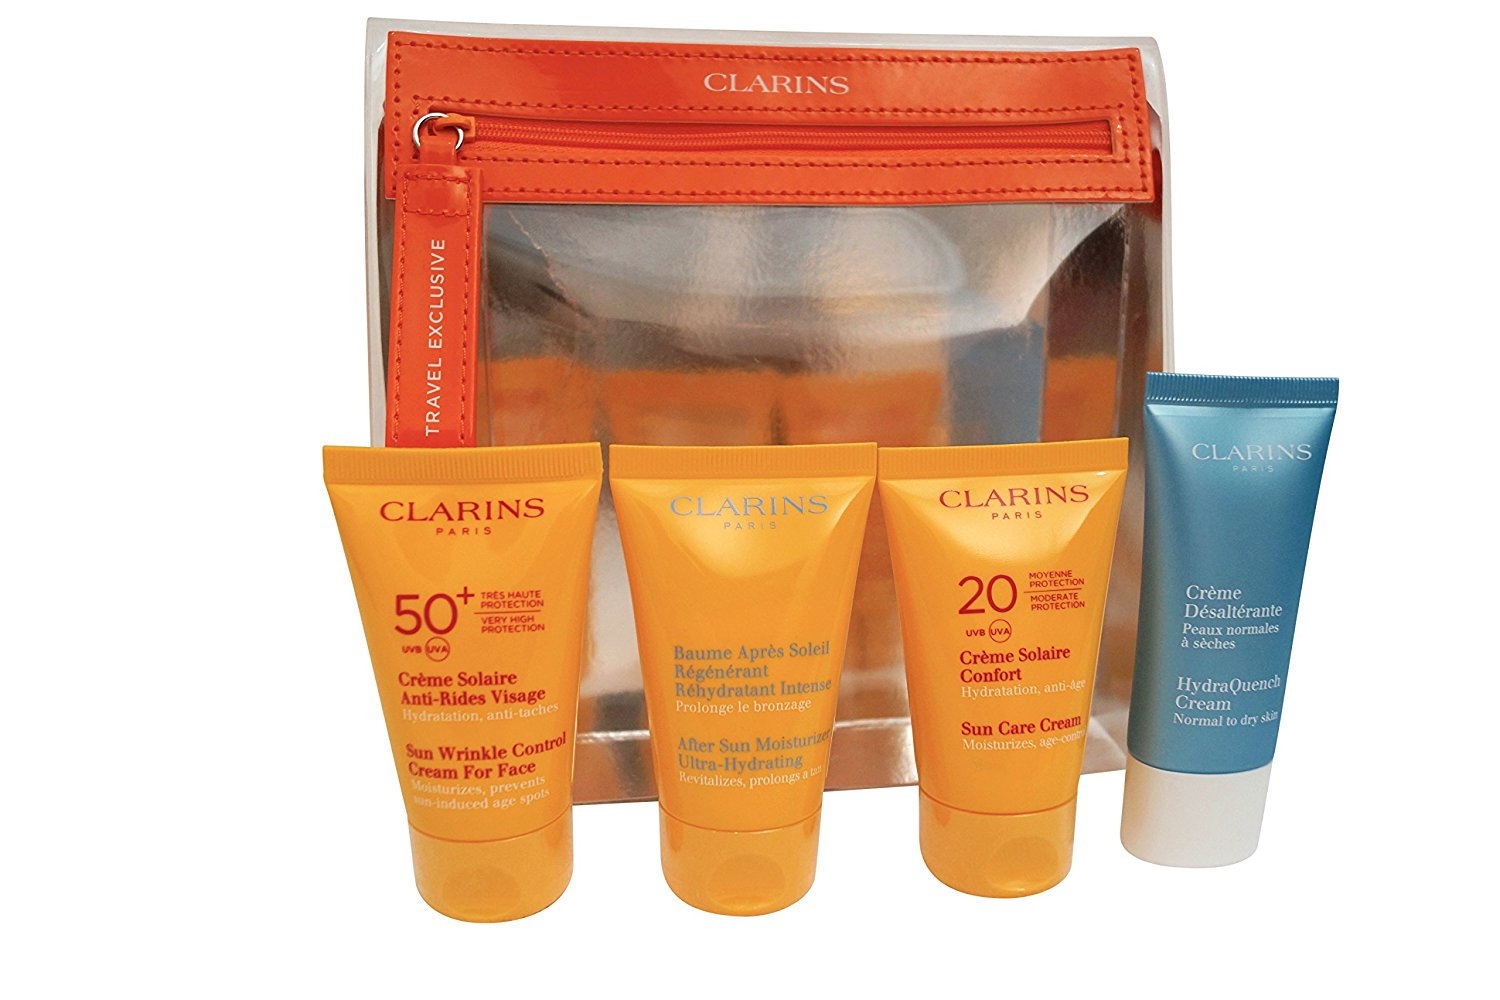 Clarins Sun Protection Essentials Gift Set 75ml Sun Wrinkle Control Cream  UVB30 + 150ml Sun Care Oil Spray UVB30 + 200ml After Sun Ultra Hydrating ... a2c2b8827c